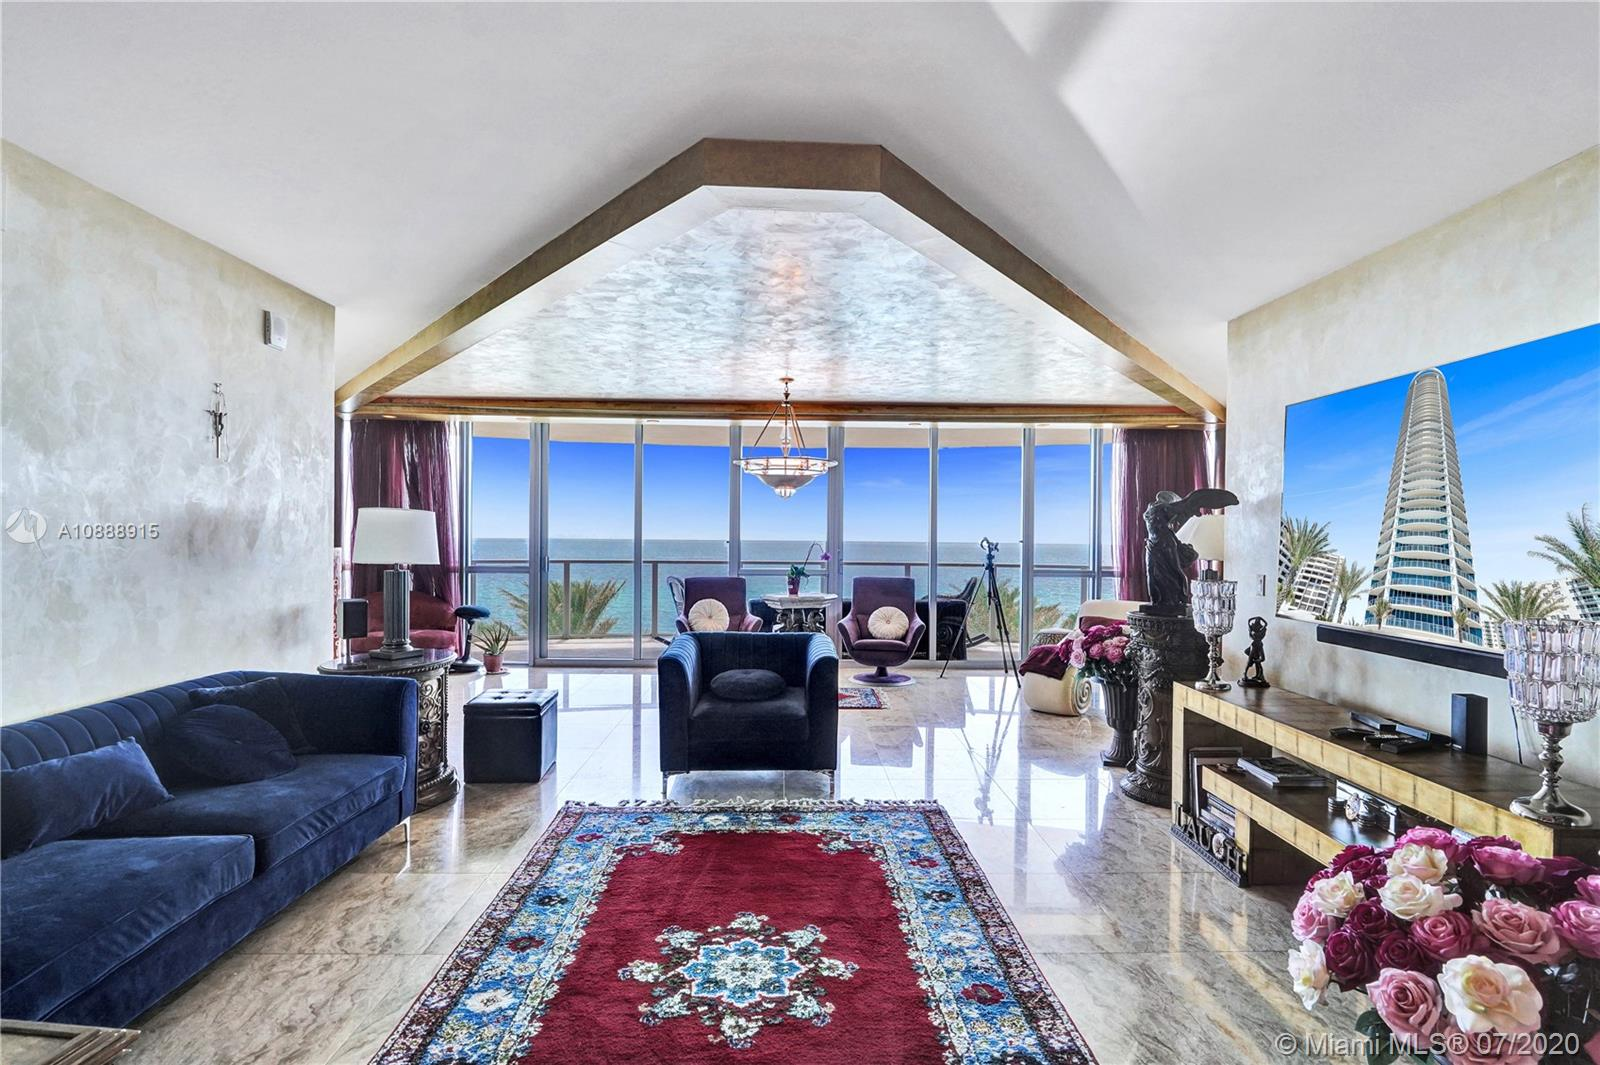 Welcome to your private waterfront palace at the Ocean Palms, Hollywood Beach! The most desirable line in the building, with 180-degree direct ocean views from every room. Private elevator that opens directly to the unit. Timeless & contemporary Venetian Plaster throughout the walls, & columns are wrapped in gold leaf in this elegant home. This residence features 3 bedrooms (easily converted back to 4 bdrms), 4.5 bathrooms, plus three large, private balconies to enjoy the most amazing views. Expansive layout offers an open kitchen w/ top of the line appliances and spacious living room and dining area. Building amenities include a 2-story fitness center, pool deck with spa and beach access, sauna, media center, BBQ area, dog park, tennis court, club room, valet parking, and business center.